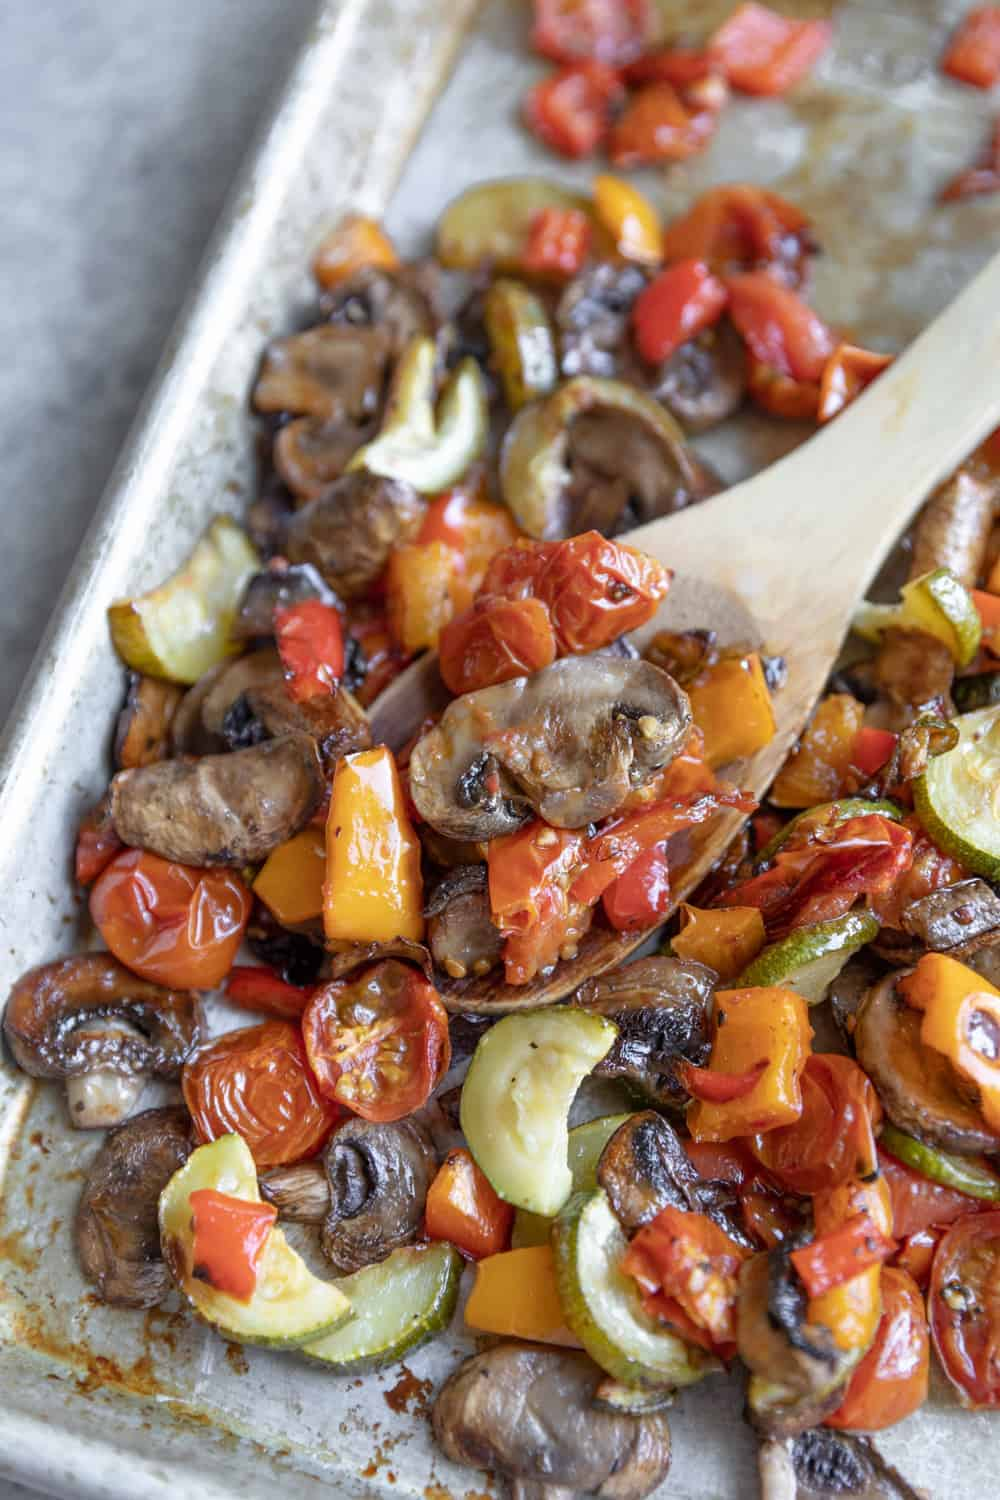 roasted vegetable tray